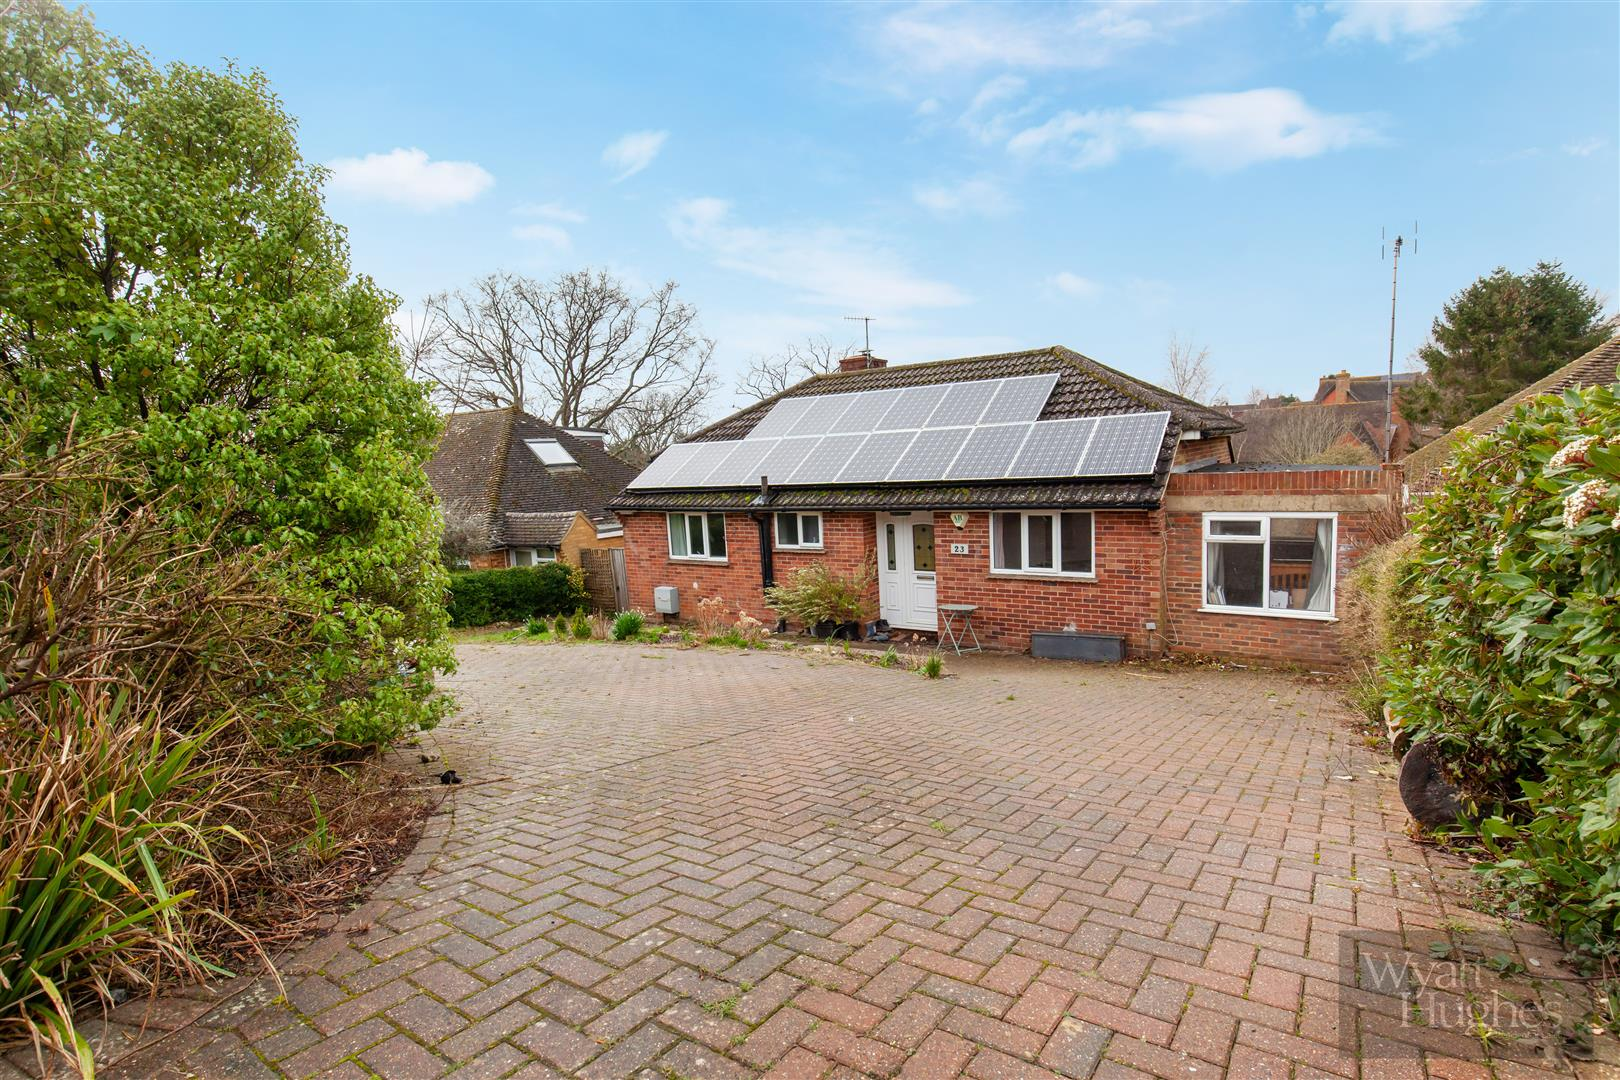 4 bed detached-bungalow for sale in Gorselands, Battle 2